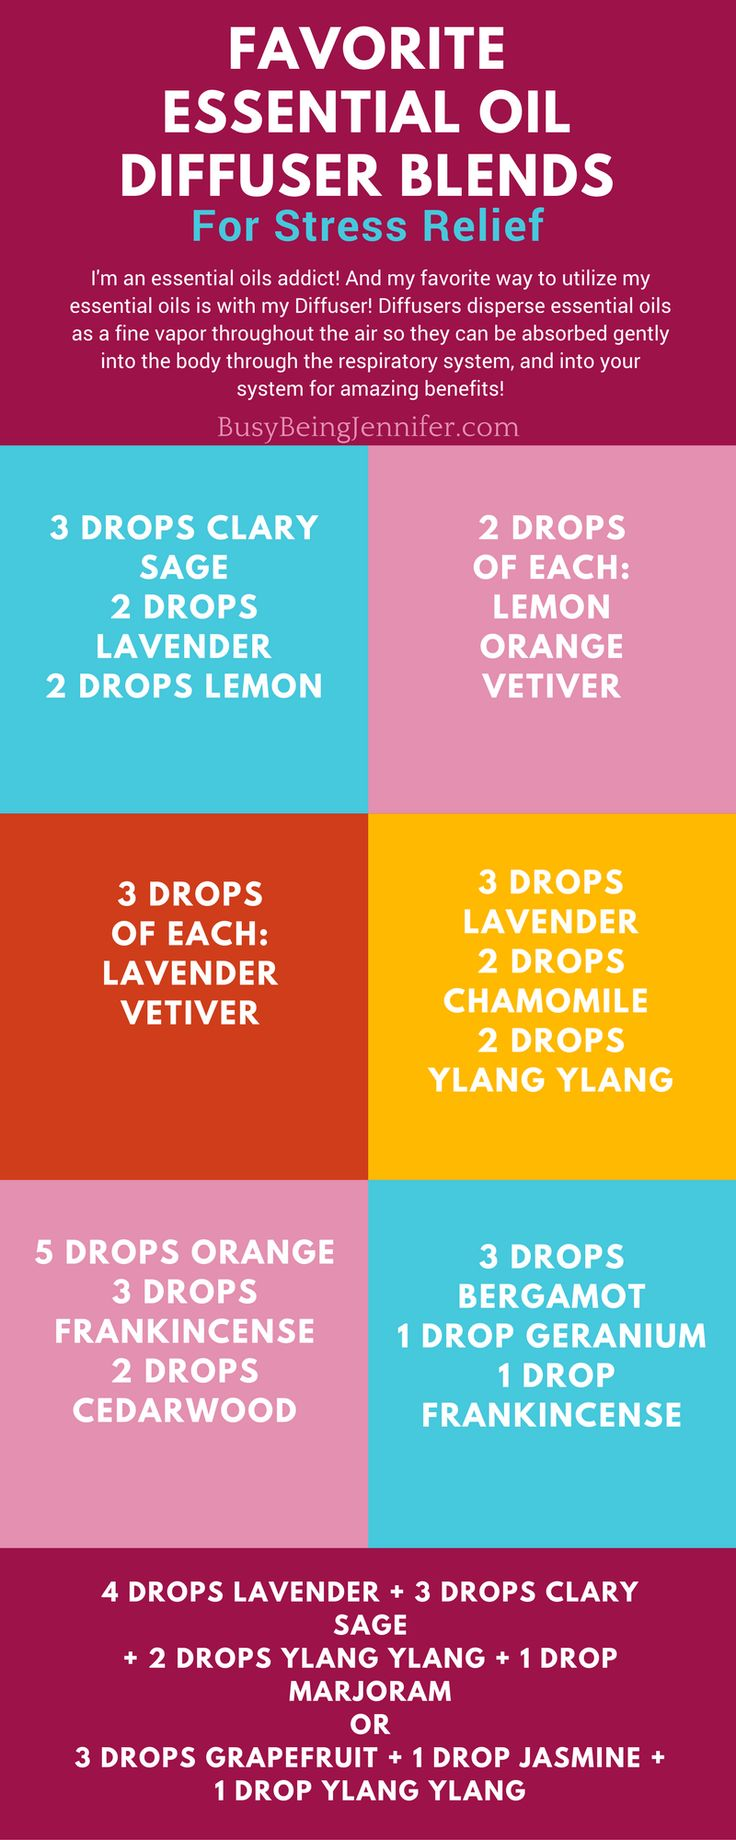 Favorite Essential Oils for Stress Relief Blends for the Diffuser!